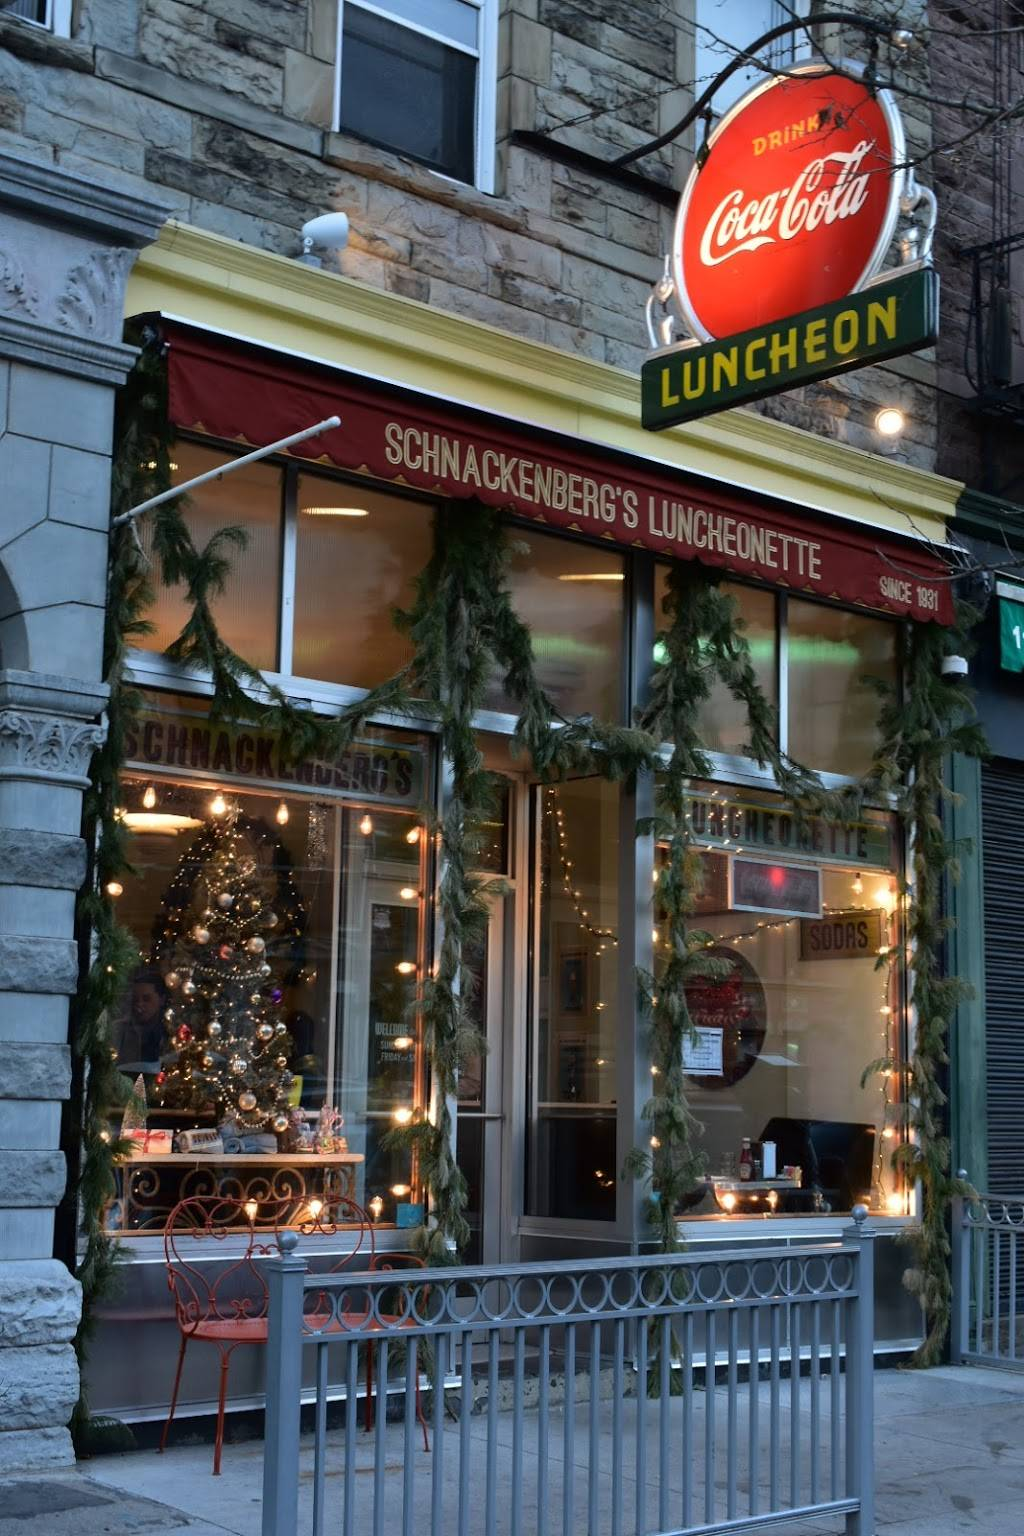 Schnackenbergs Luncheonette | restaurant | 1110 Washington St, Hoboken, NJ 07030, USA | 2017665533 OR +1 201-766-5533